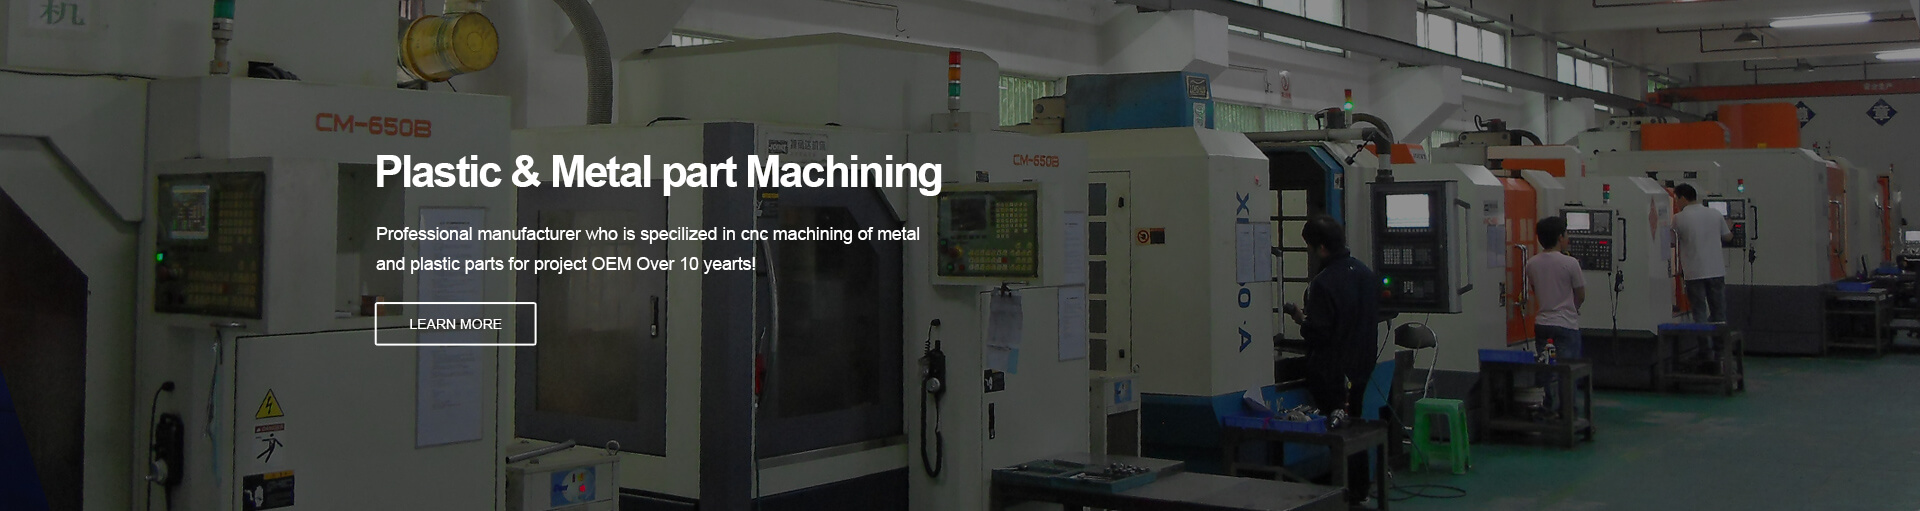 Mold, Plastic Injection Molding, Die Casting-China CNC Precision Machining